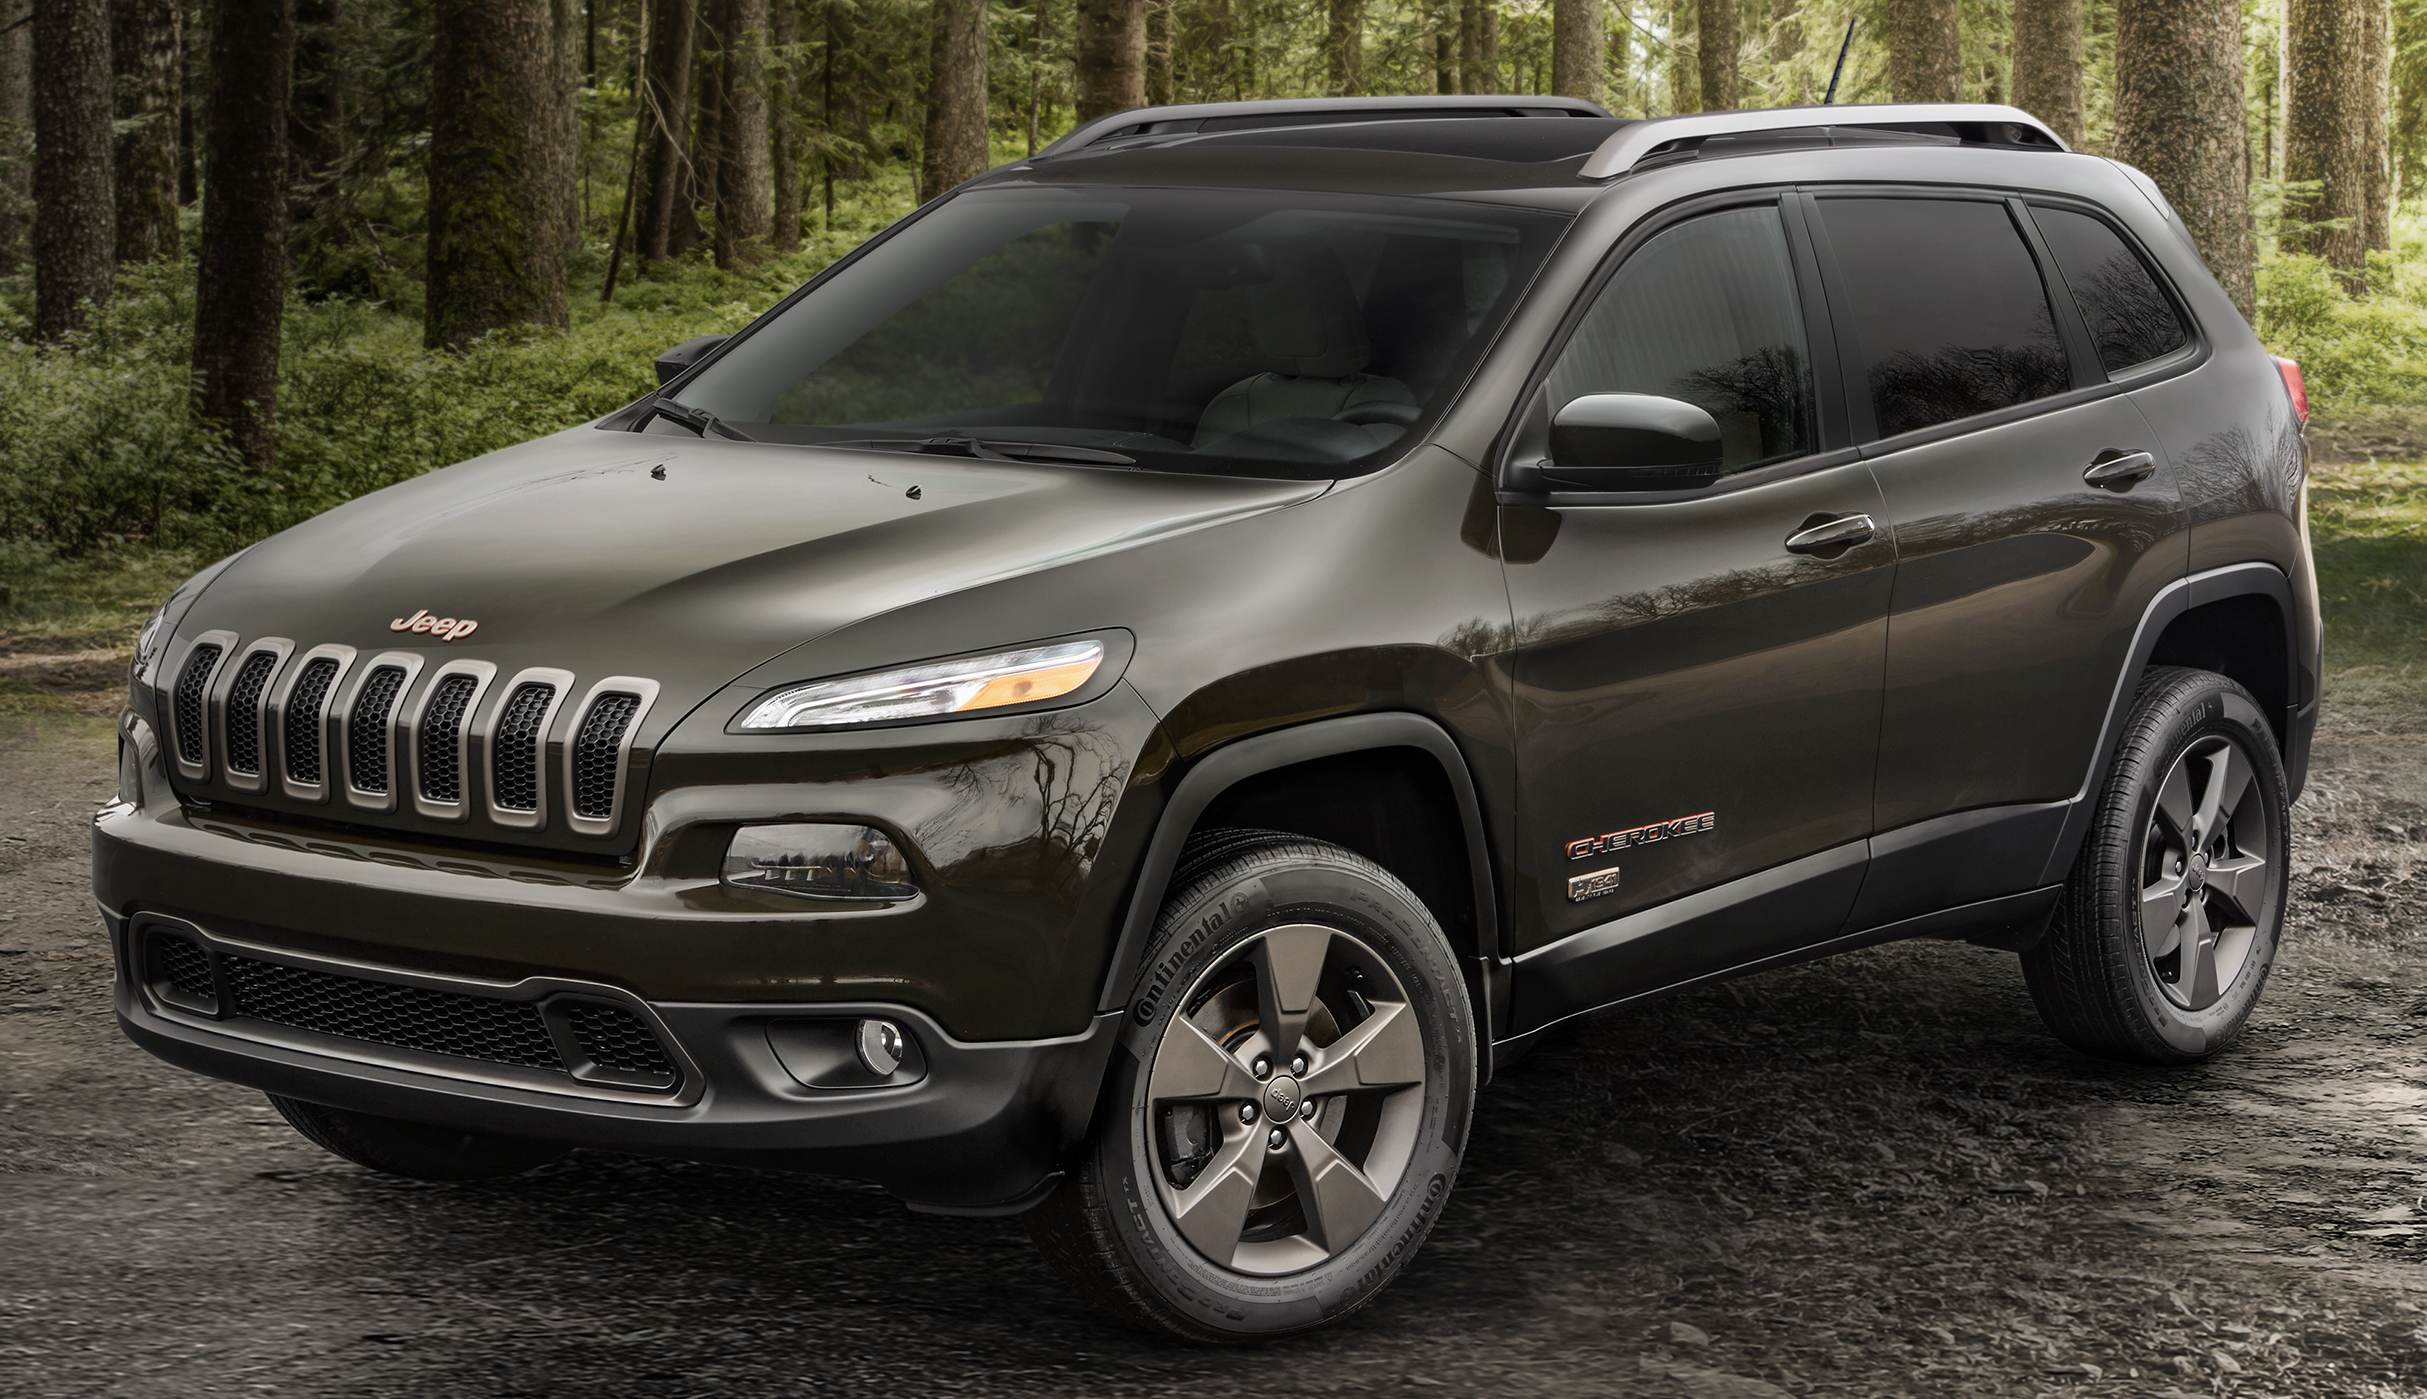 Jeep 2018 Models >> Jeep 75th Anniversary special edition models unveiled Paul Tan - Image 425942